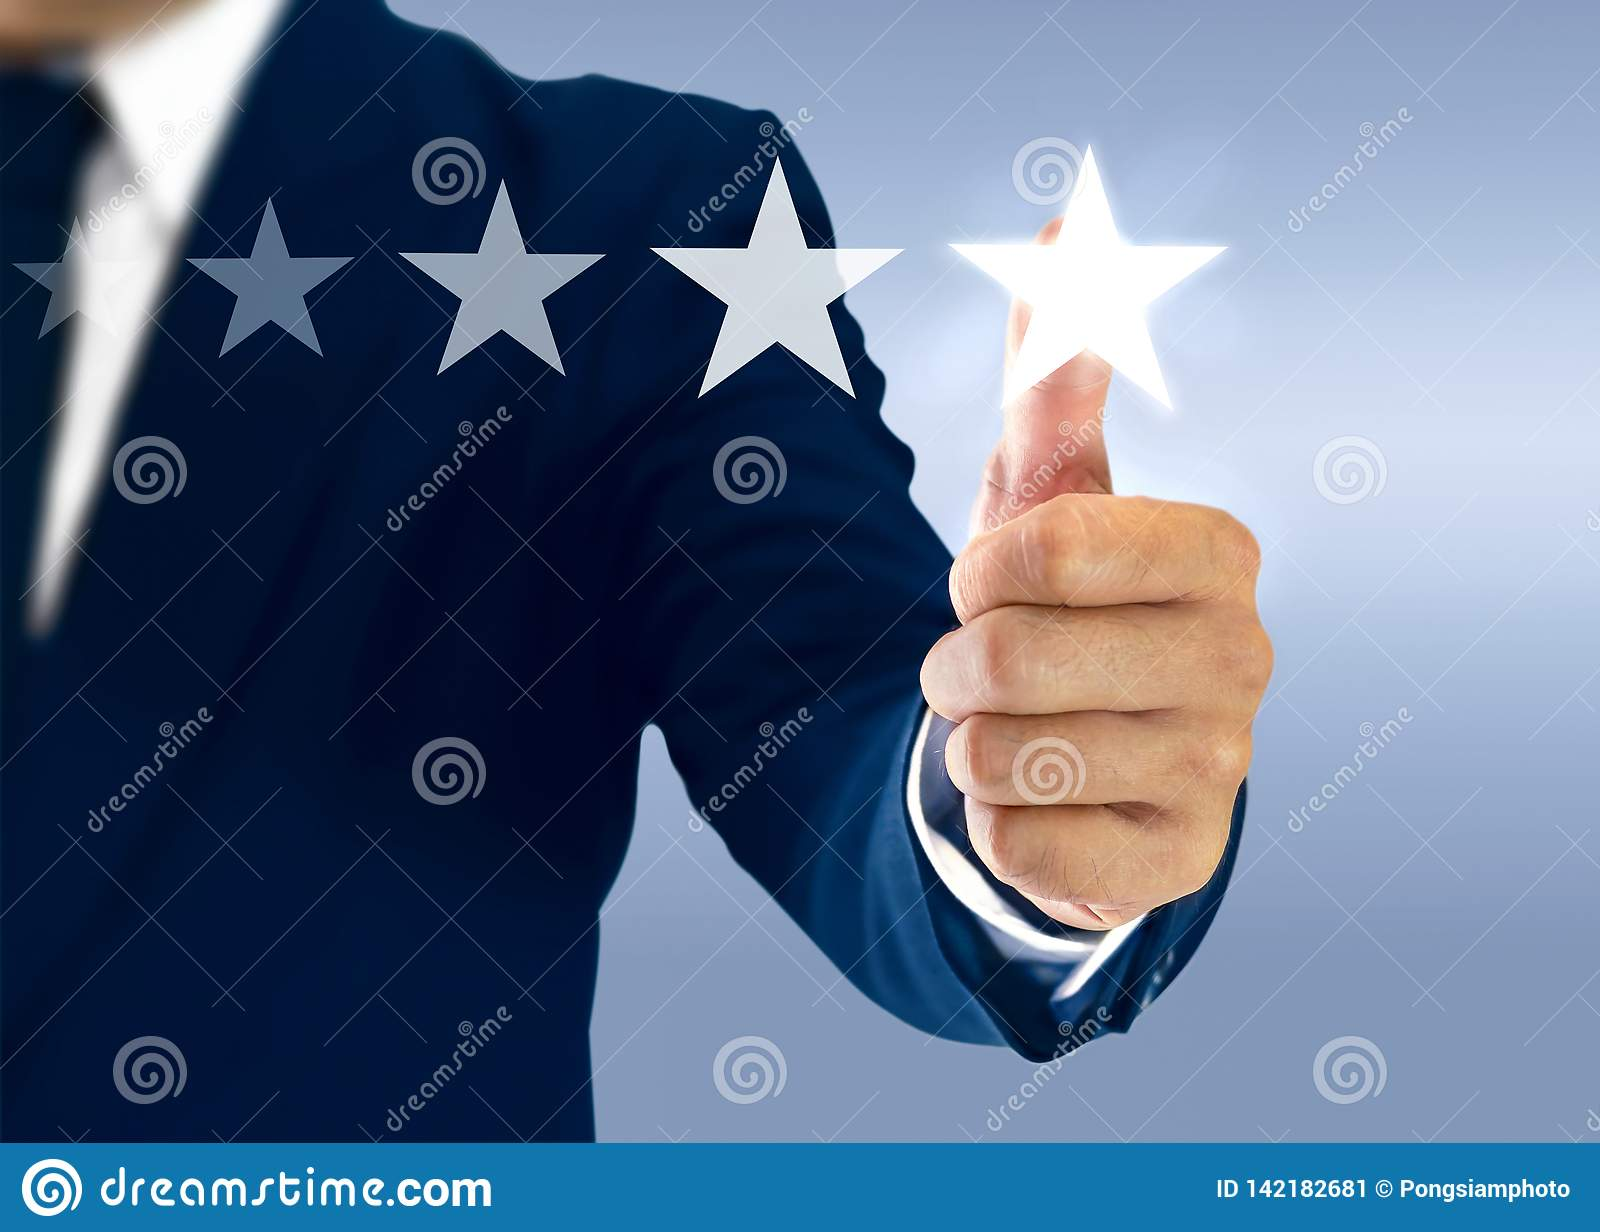 Increase ranking and rating with businessman is touching virtual screen